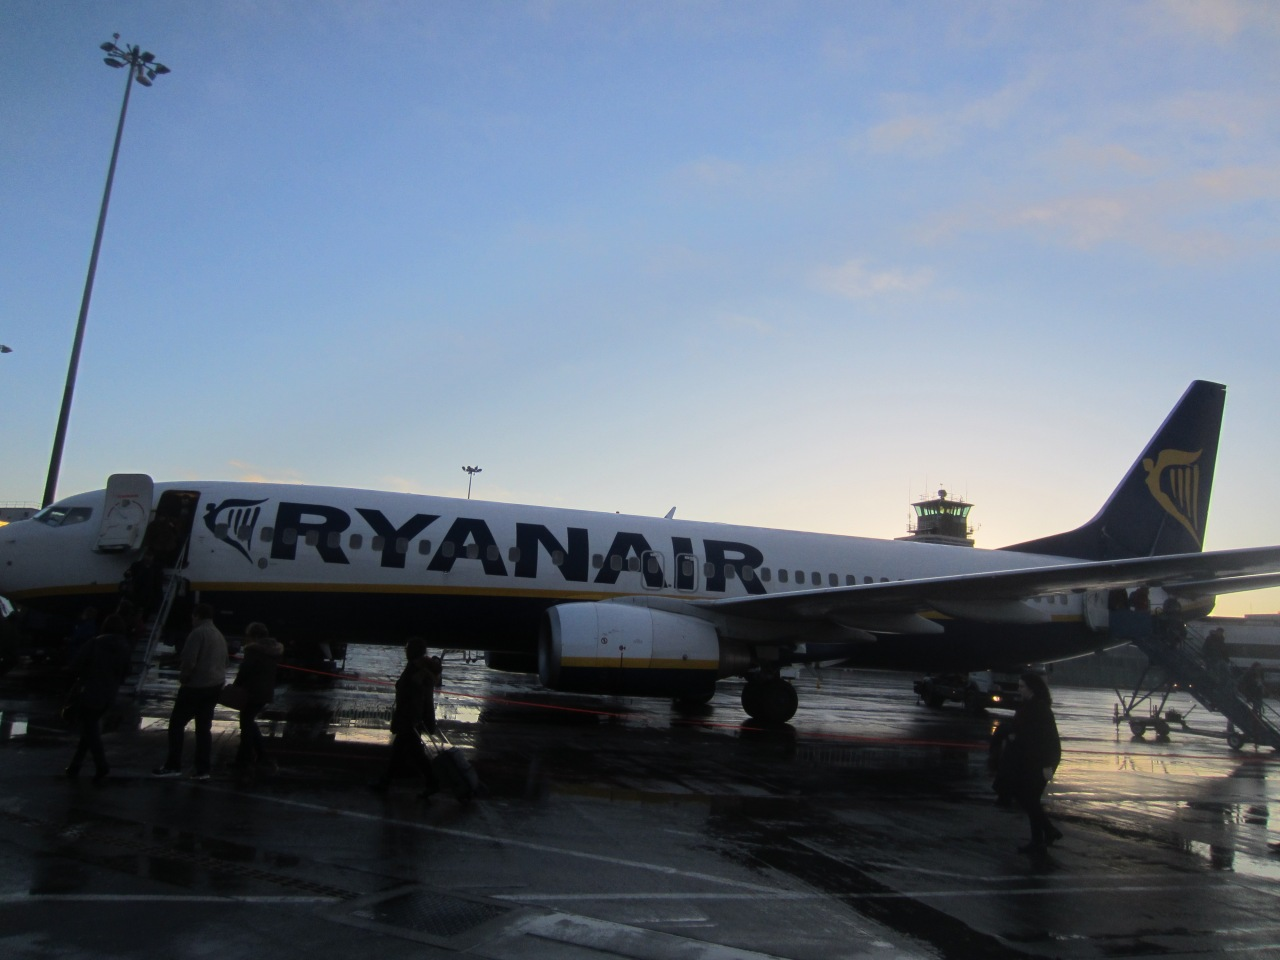 The all-new Ryanair experience